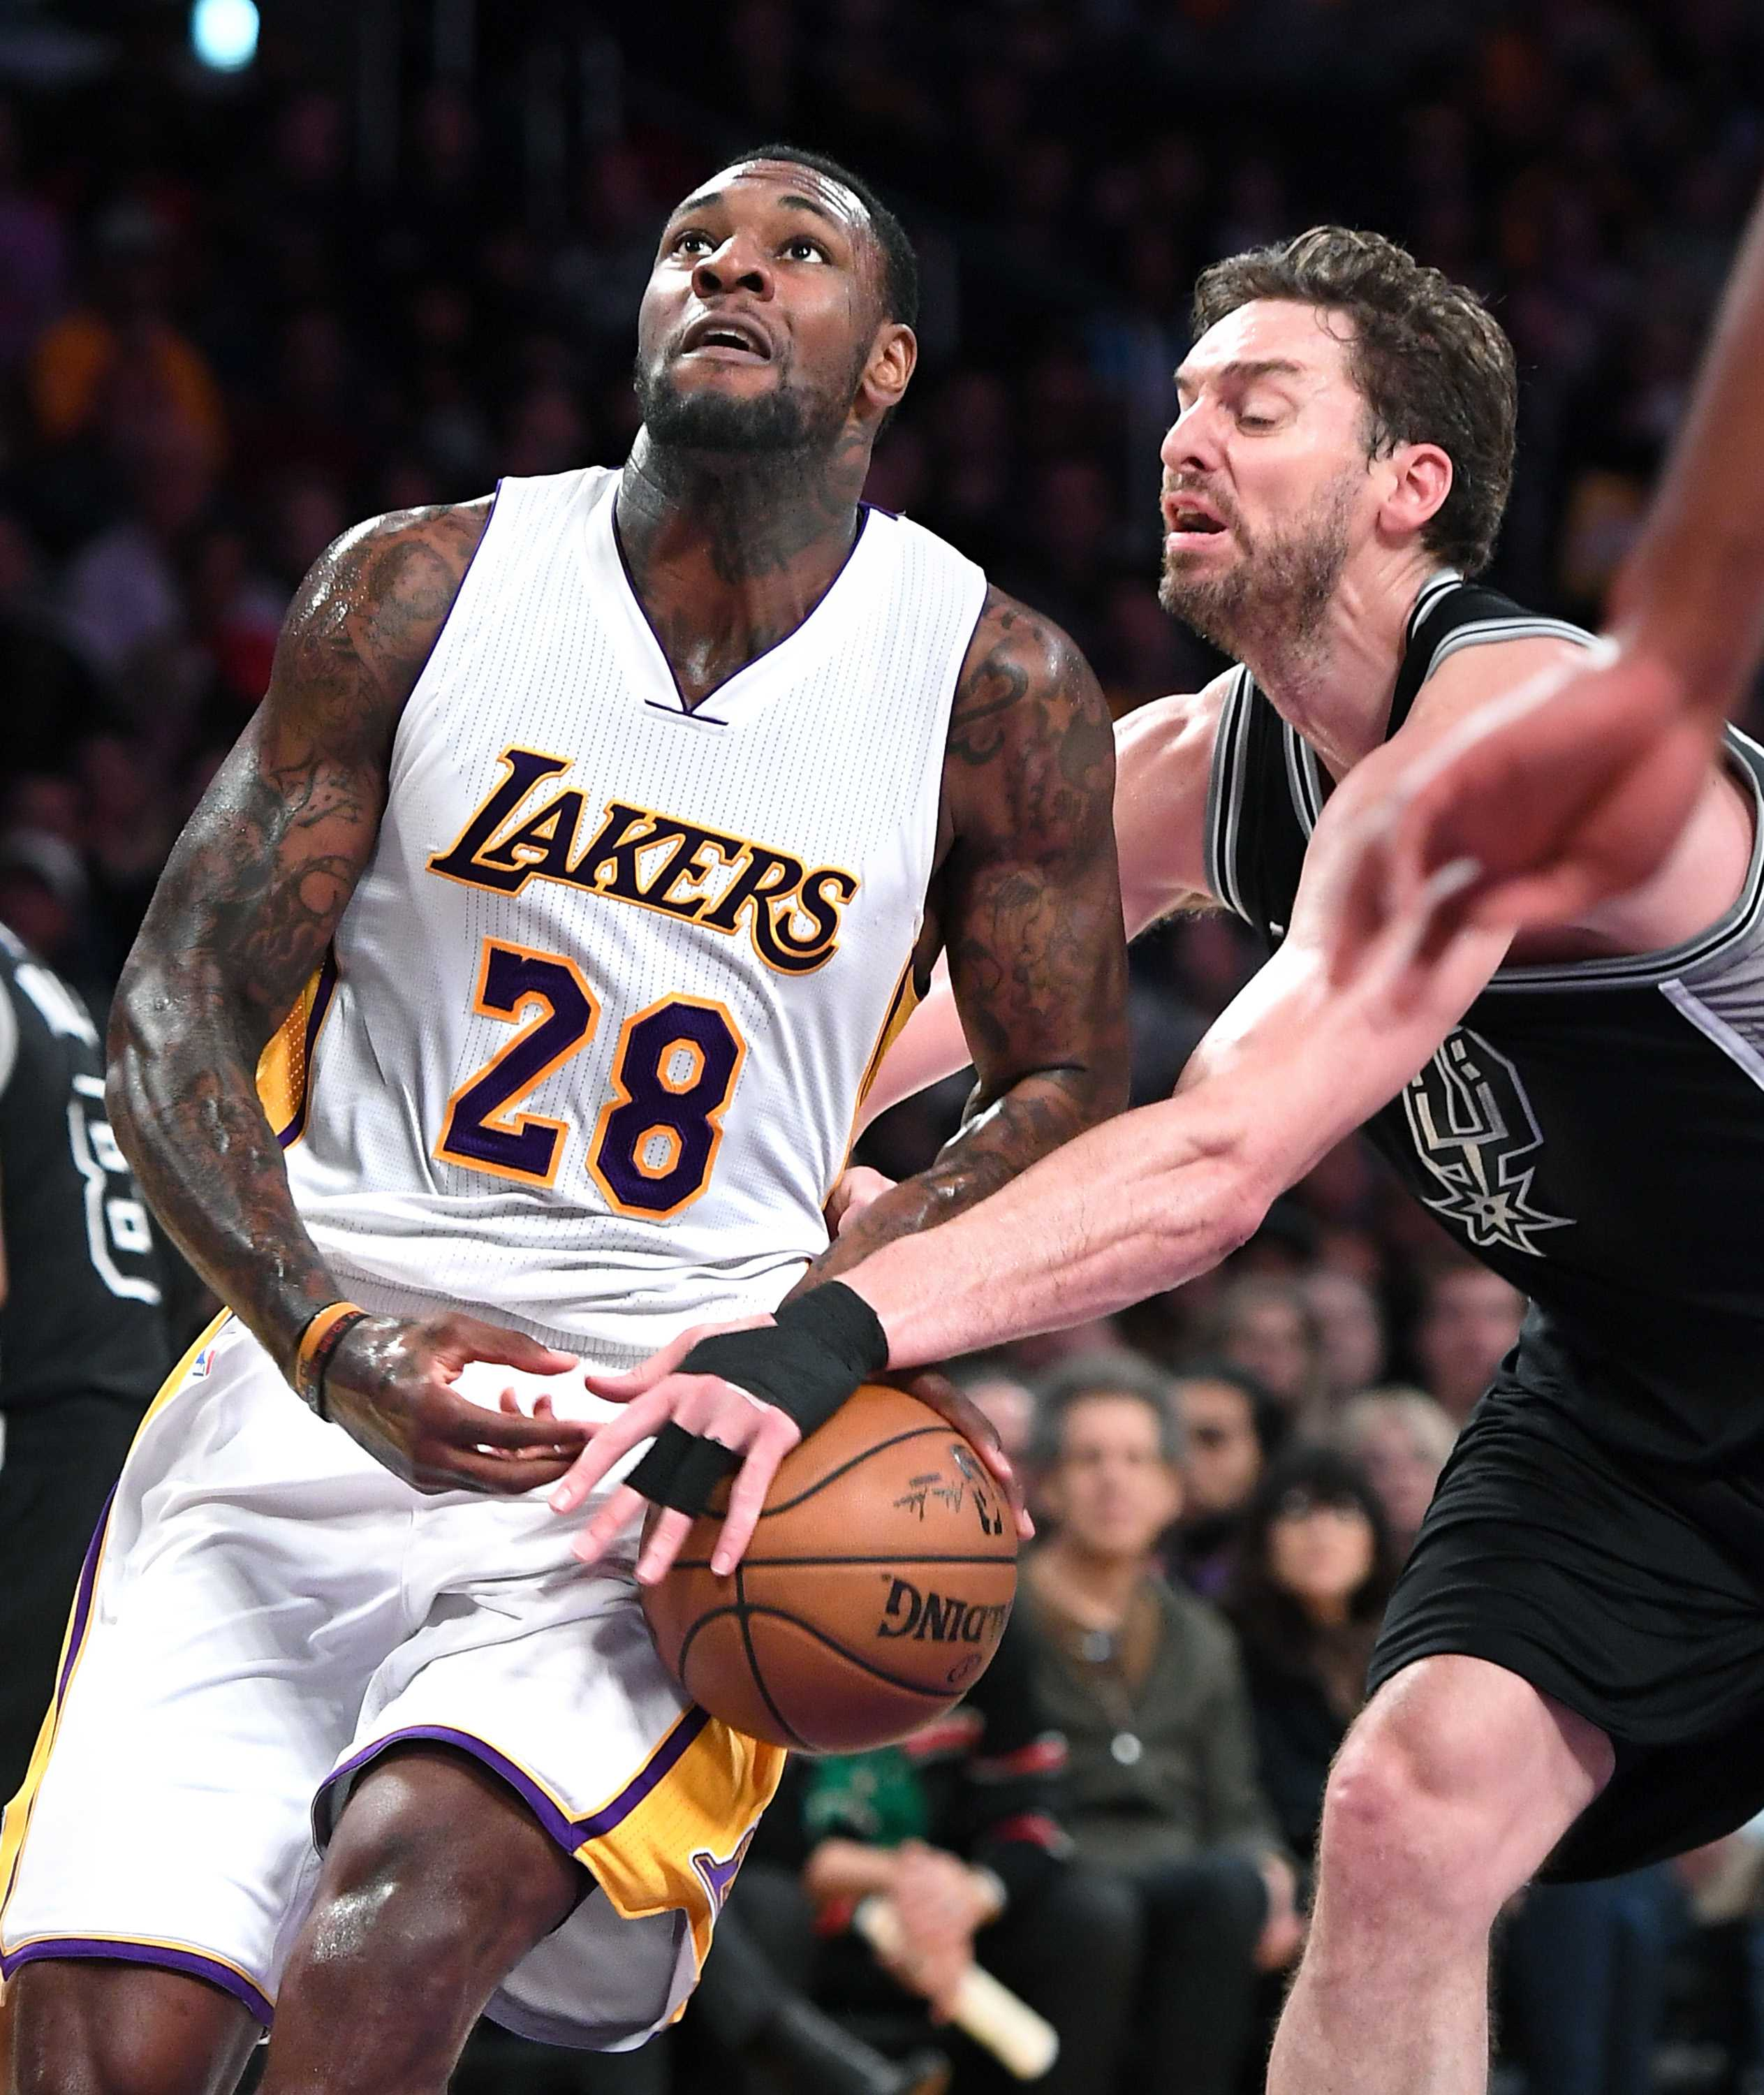 Los Angeles Lakers' Tarik Black has the ball knocked away by San Antonio Spurs' Pau Gasol while driving to the basket on Sunday, Feb. 26, 2017 at the Staples Center in Los Angeles, Calif. (Wally Skalij/Los Angeles Times/TNS)